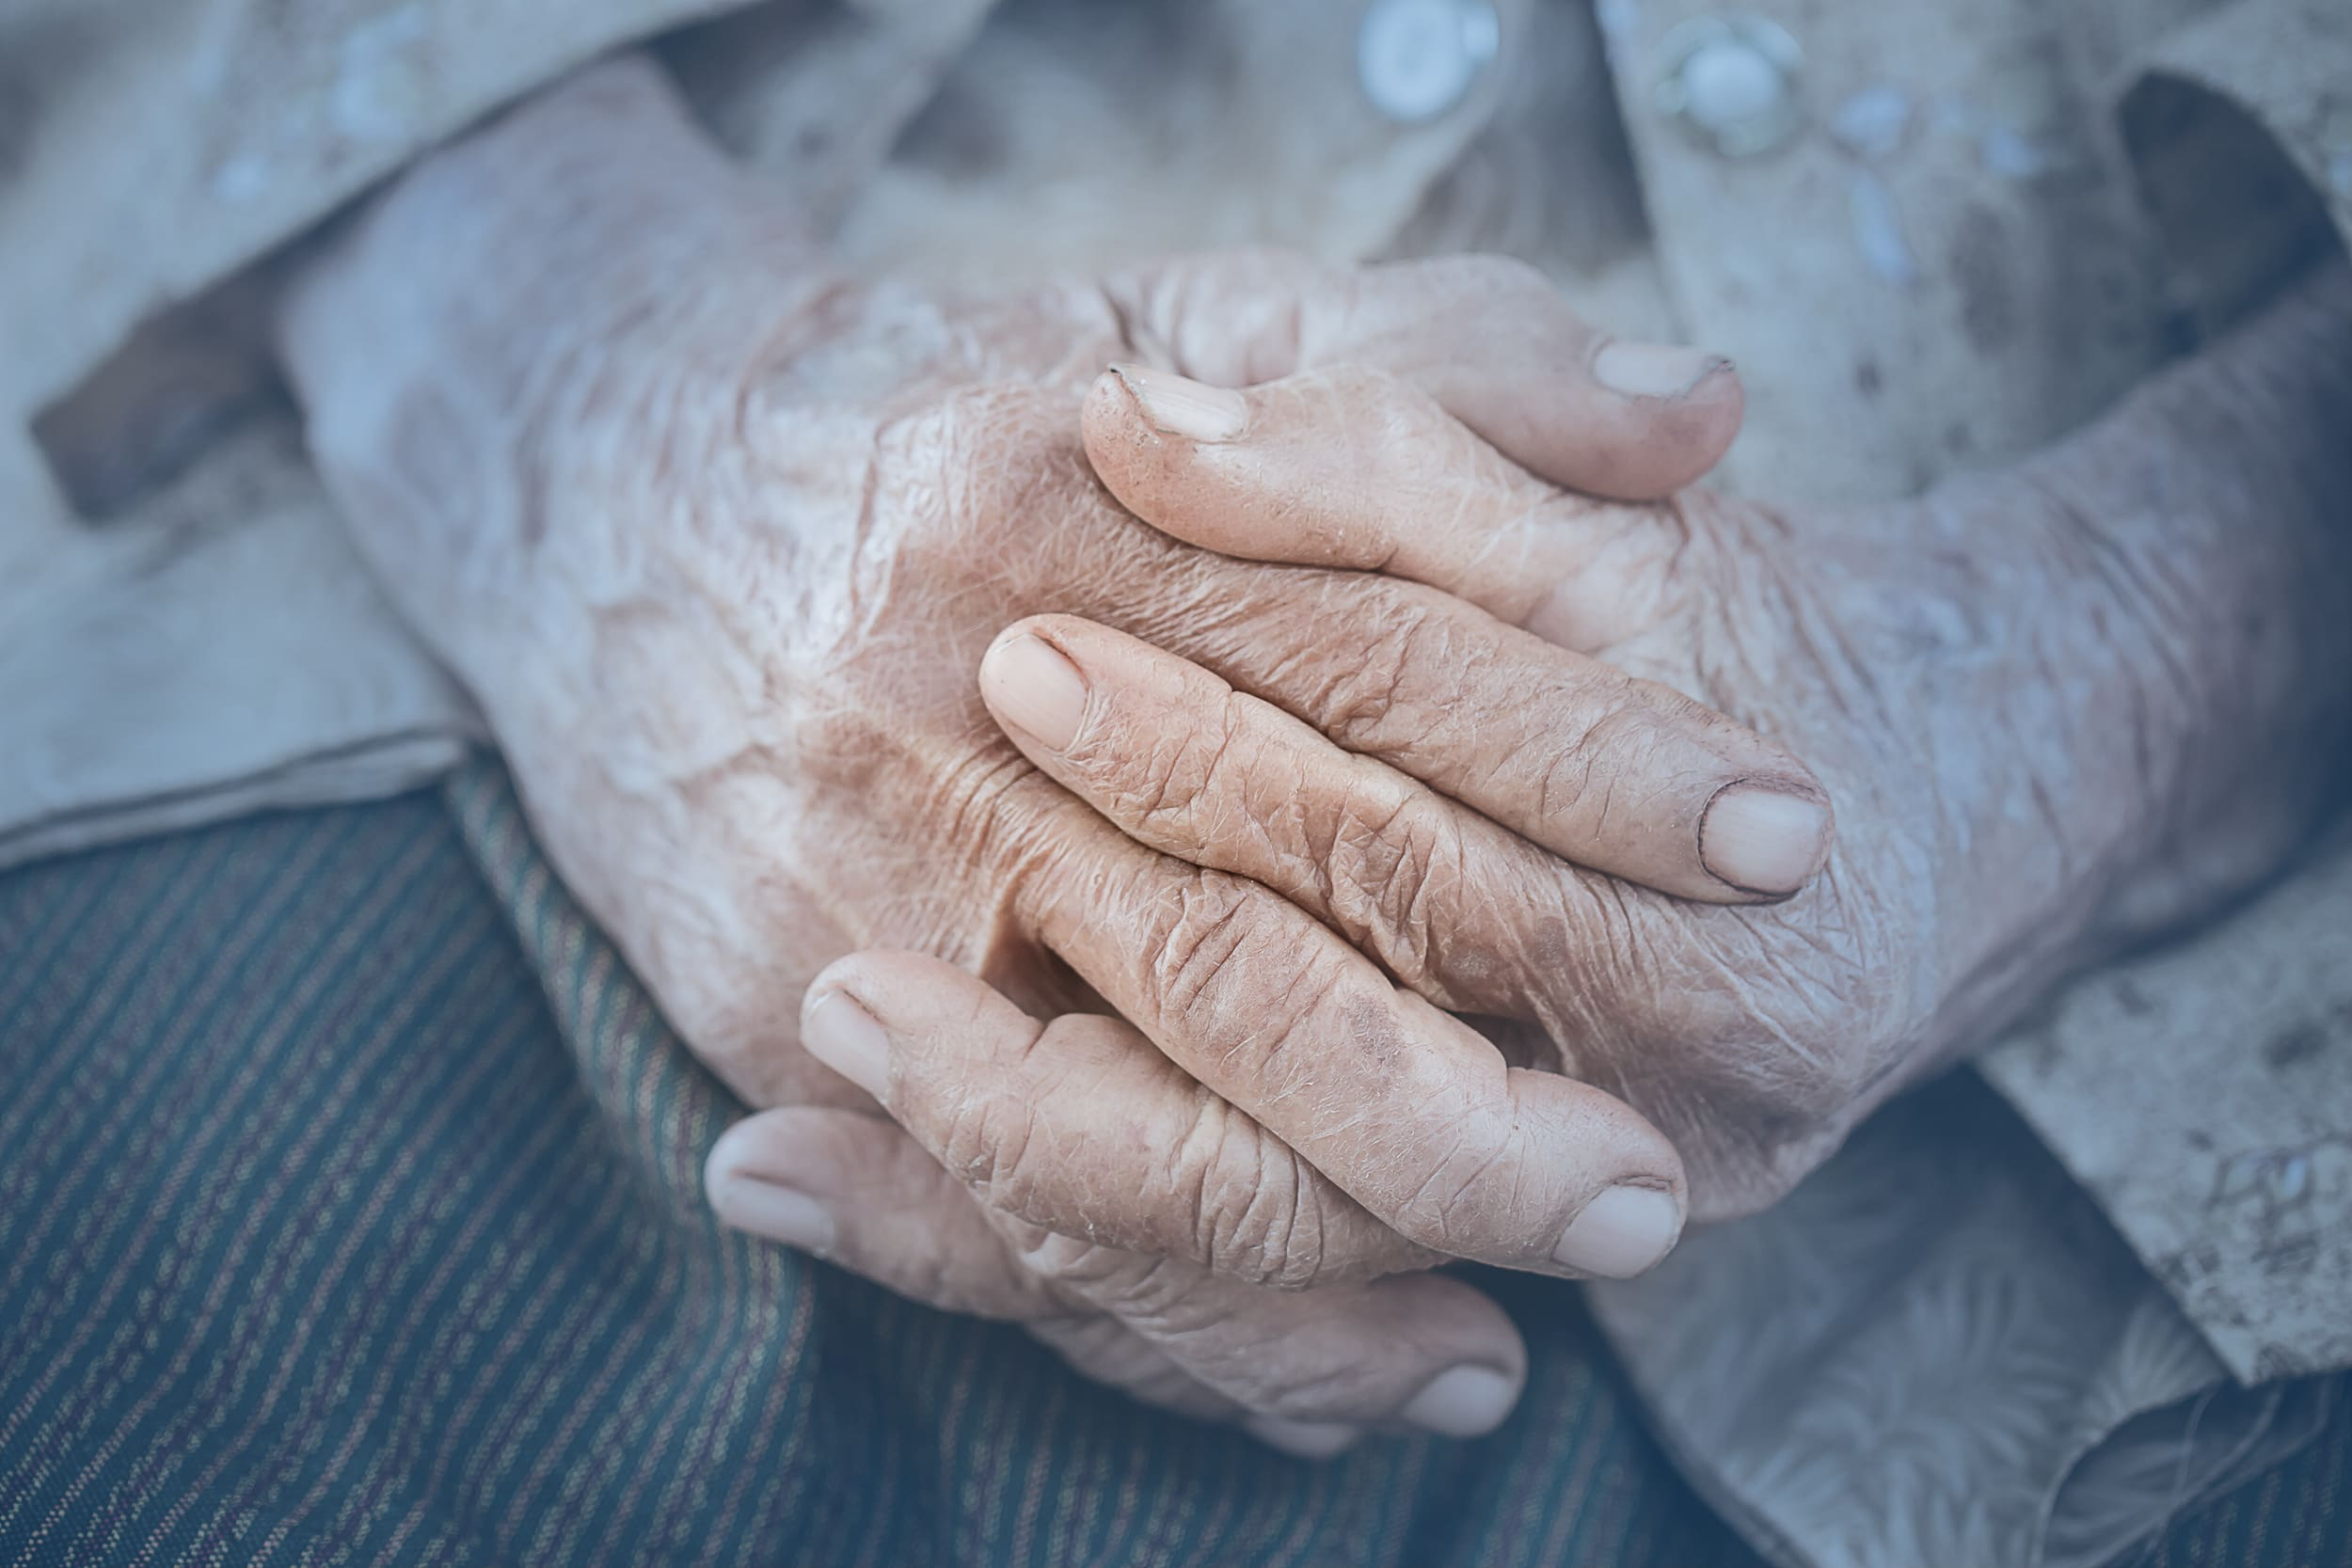 Shades of Gray: Perspectives on Aging Attorneys